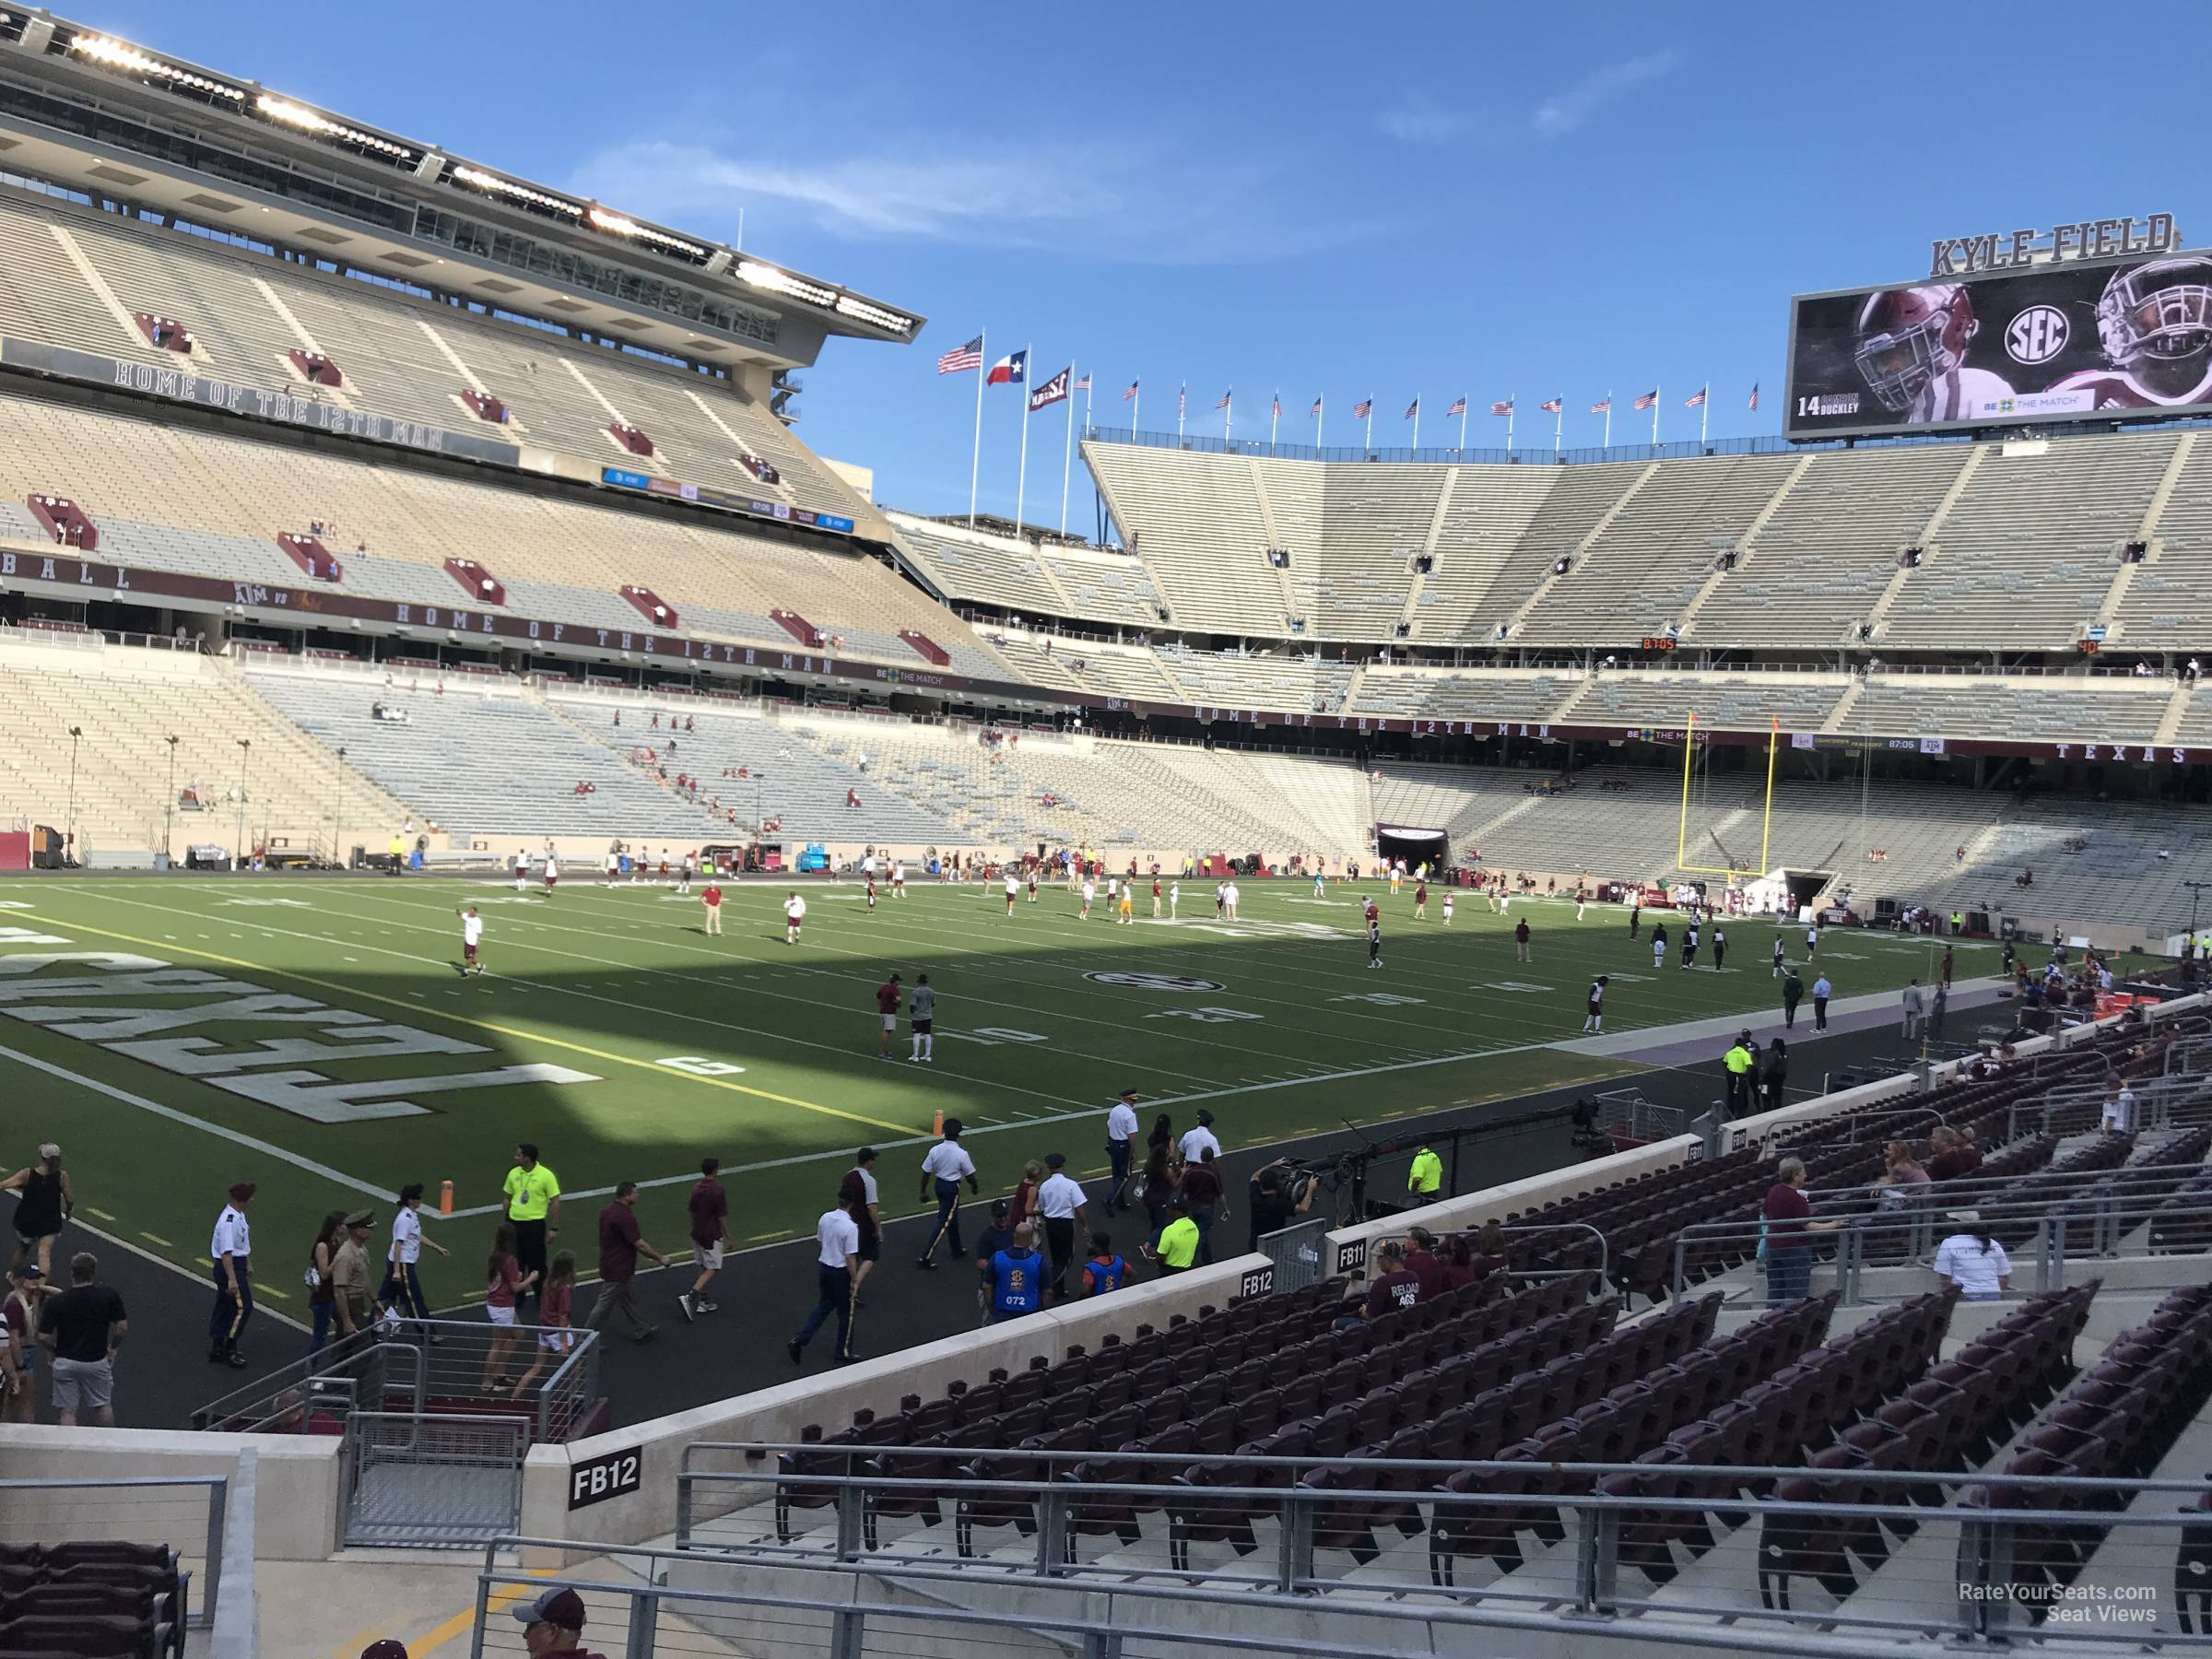 Seat View for Kyle Field Field Box 13, Row 20